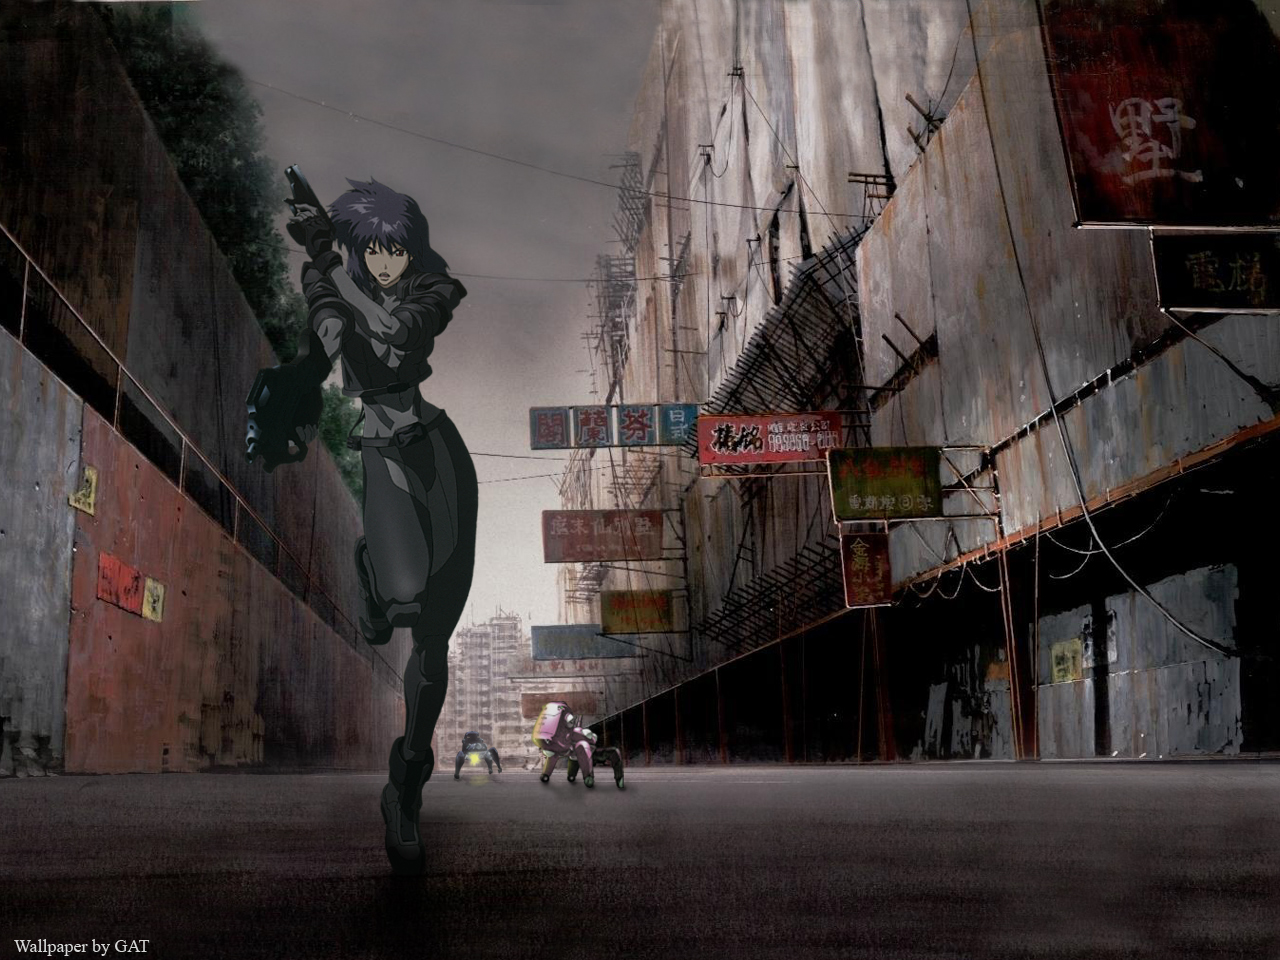 Download Wallpaper From Anime Ghost In The Shell With Tags Windows Macbook Ghost In The Shell Tachikoma